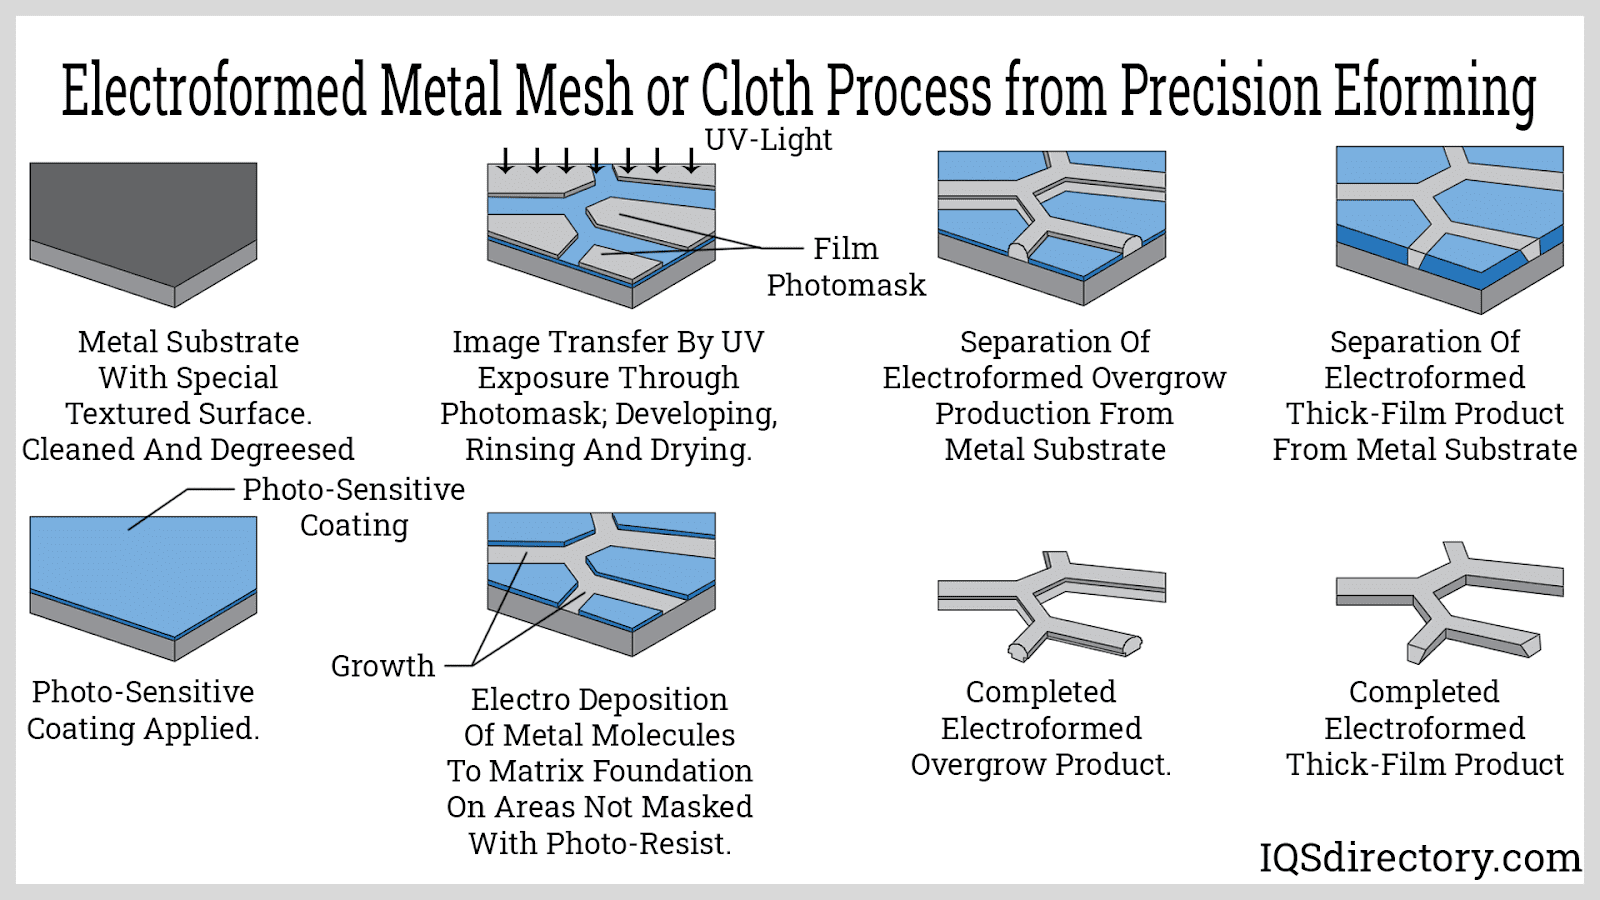 Electroformed Metal Mesh or Cloth Process from Precision Eforming